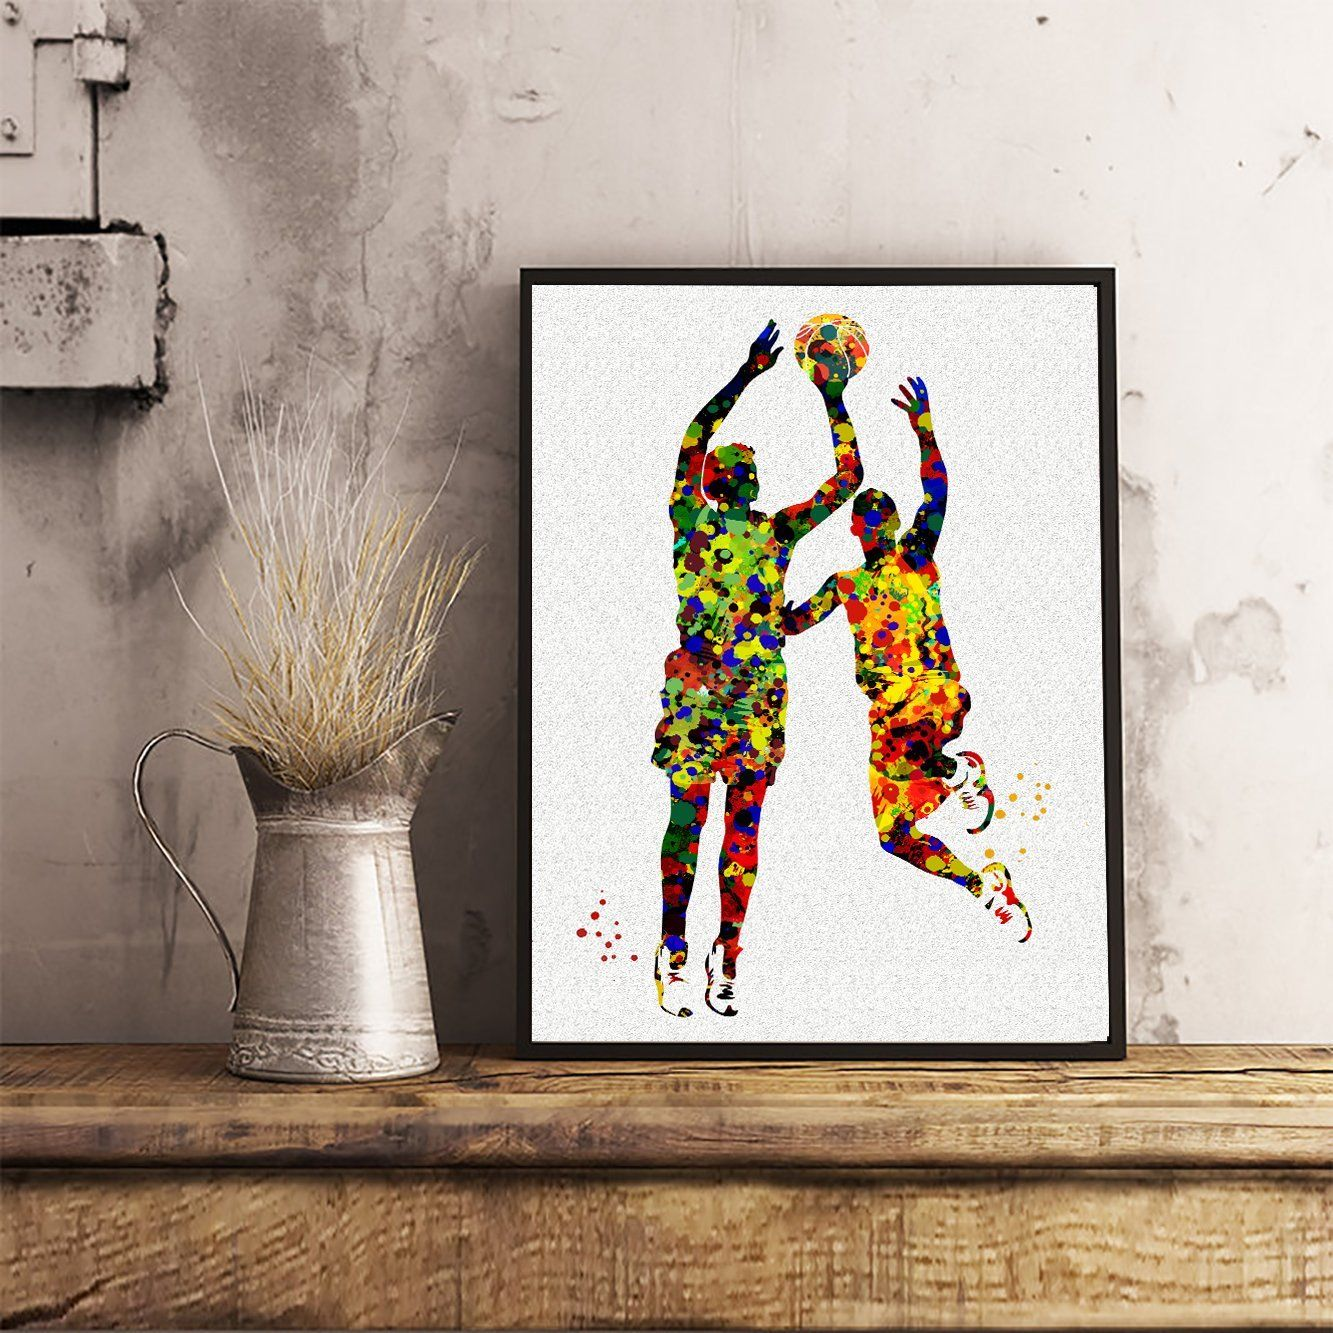 dining room artwork prints. Basketball Player Watercolor Posters Sports Art Prints Wall Decor Artworks Dining Room Artwork